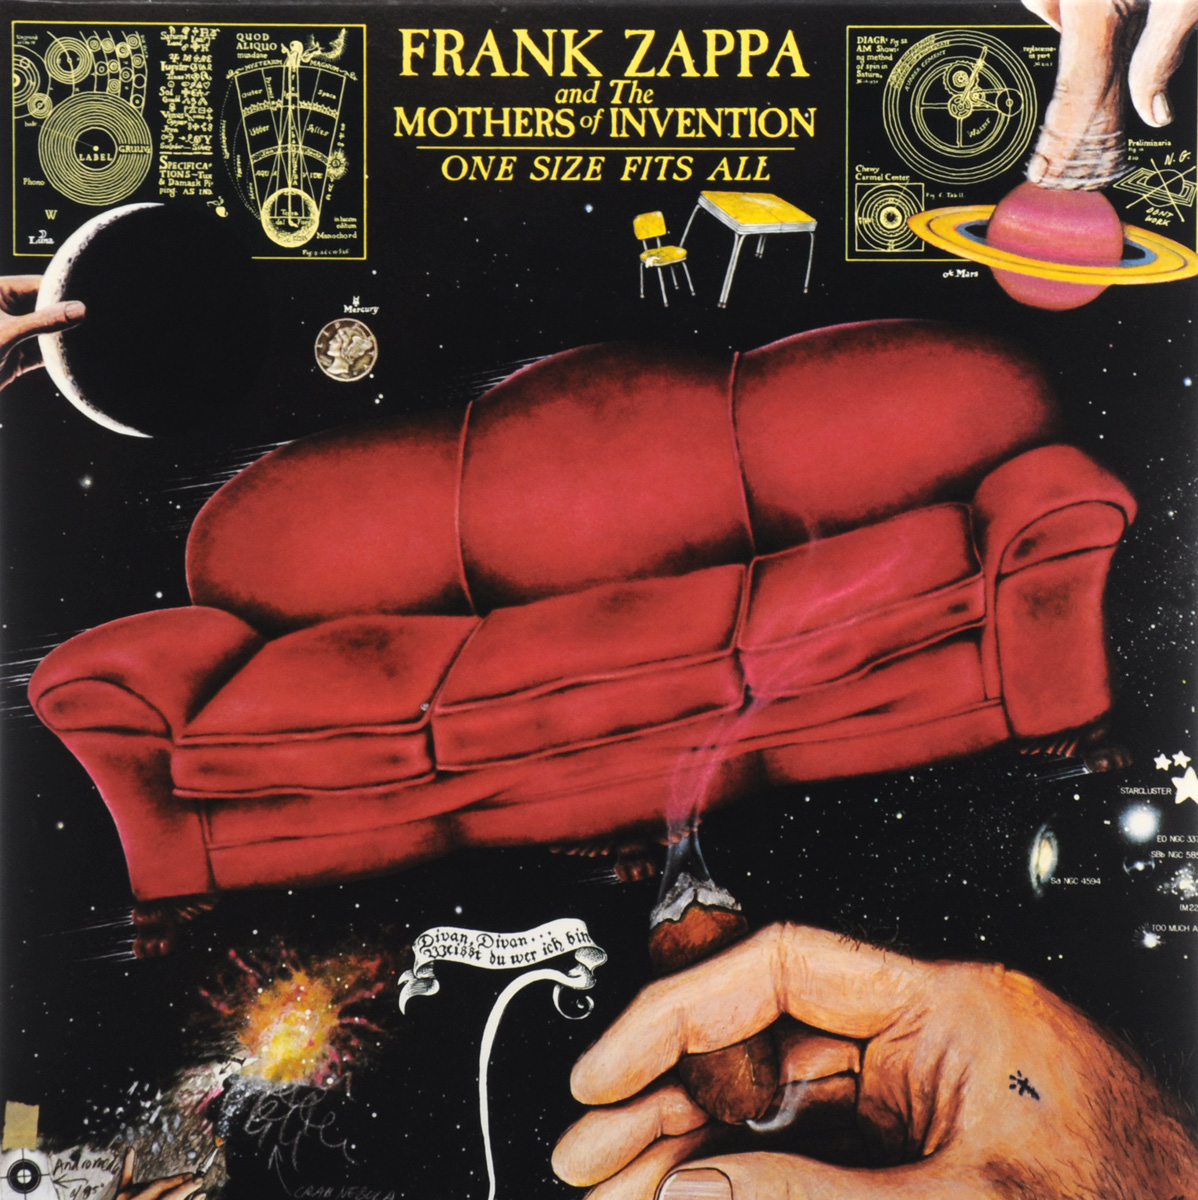 Фрэнк Заппа,The Mothers Of Invention Frank Zappa And The Mothers Of Invention. One Size Fits All (LP) bernard buffet the invention of the modern mega artist